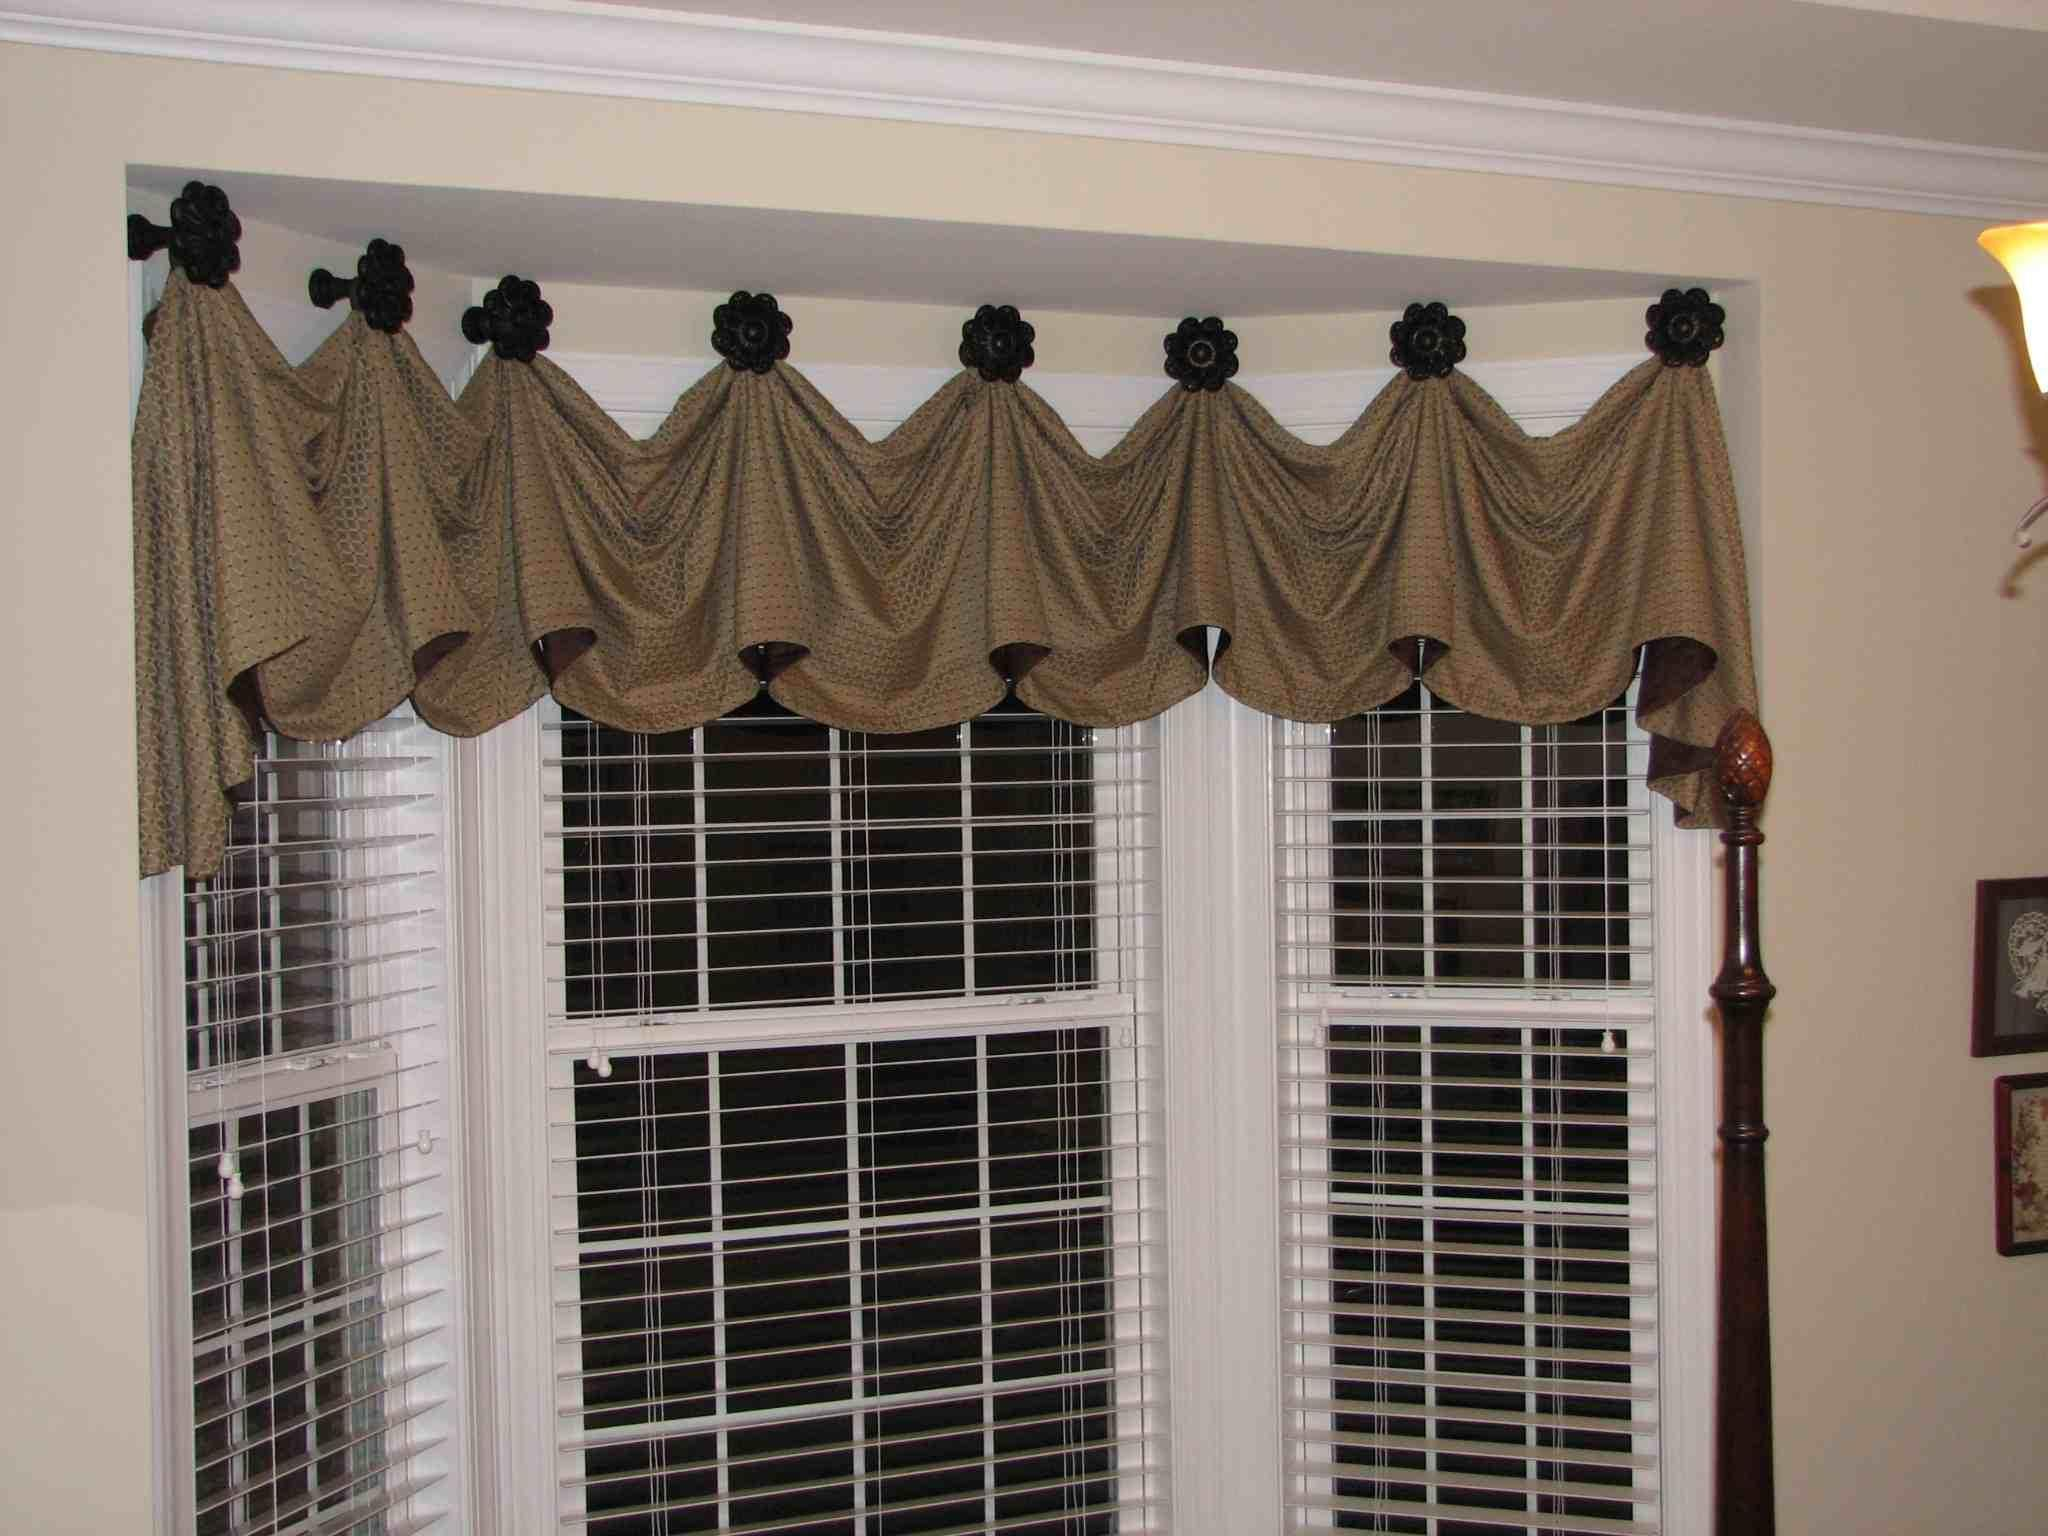 Windows Treatment For Living Room Window Treatment Valance Ideas Tailored Window Valance Ideas